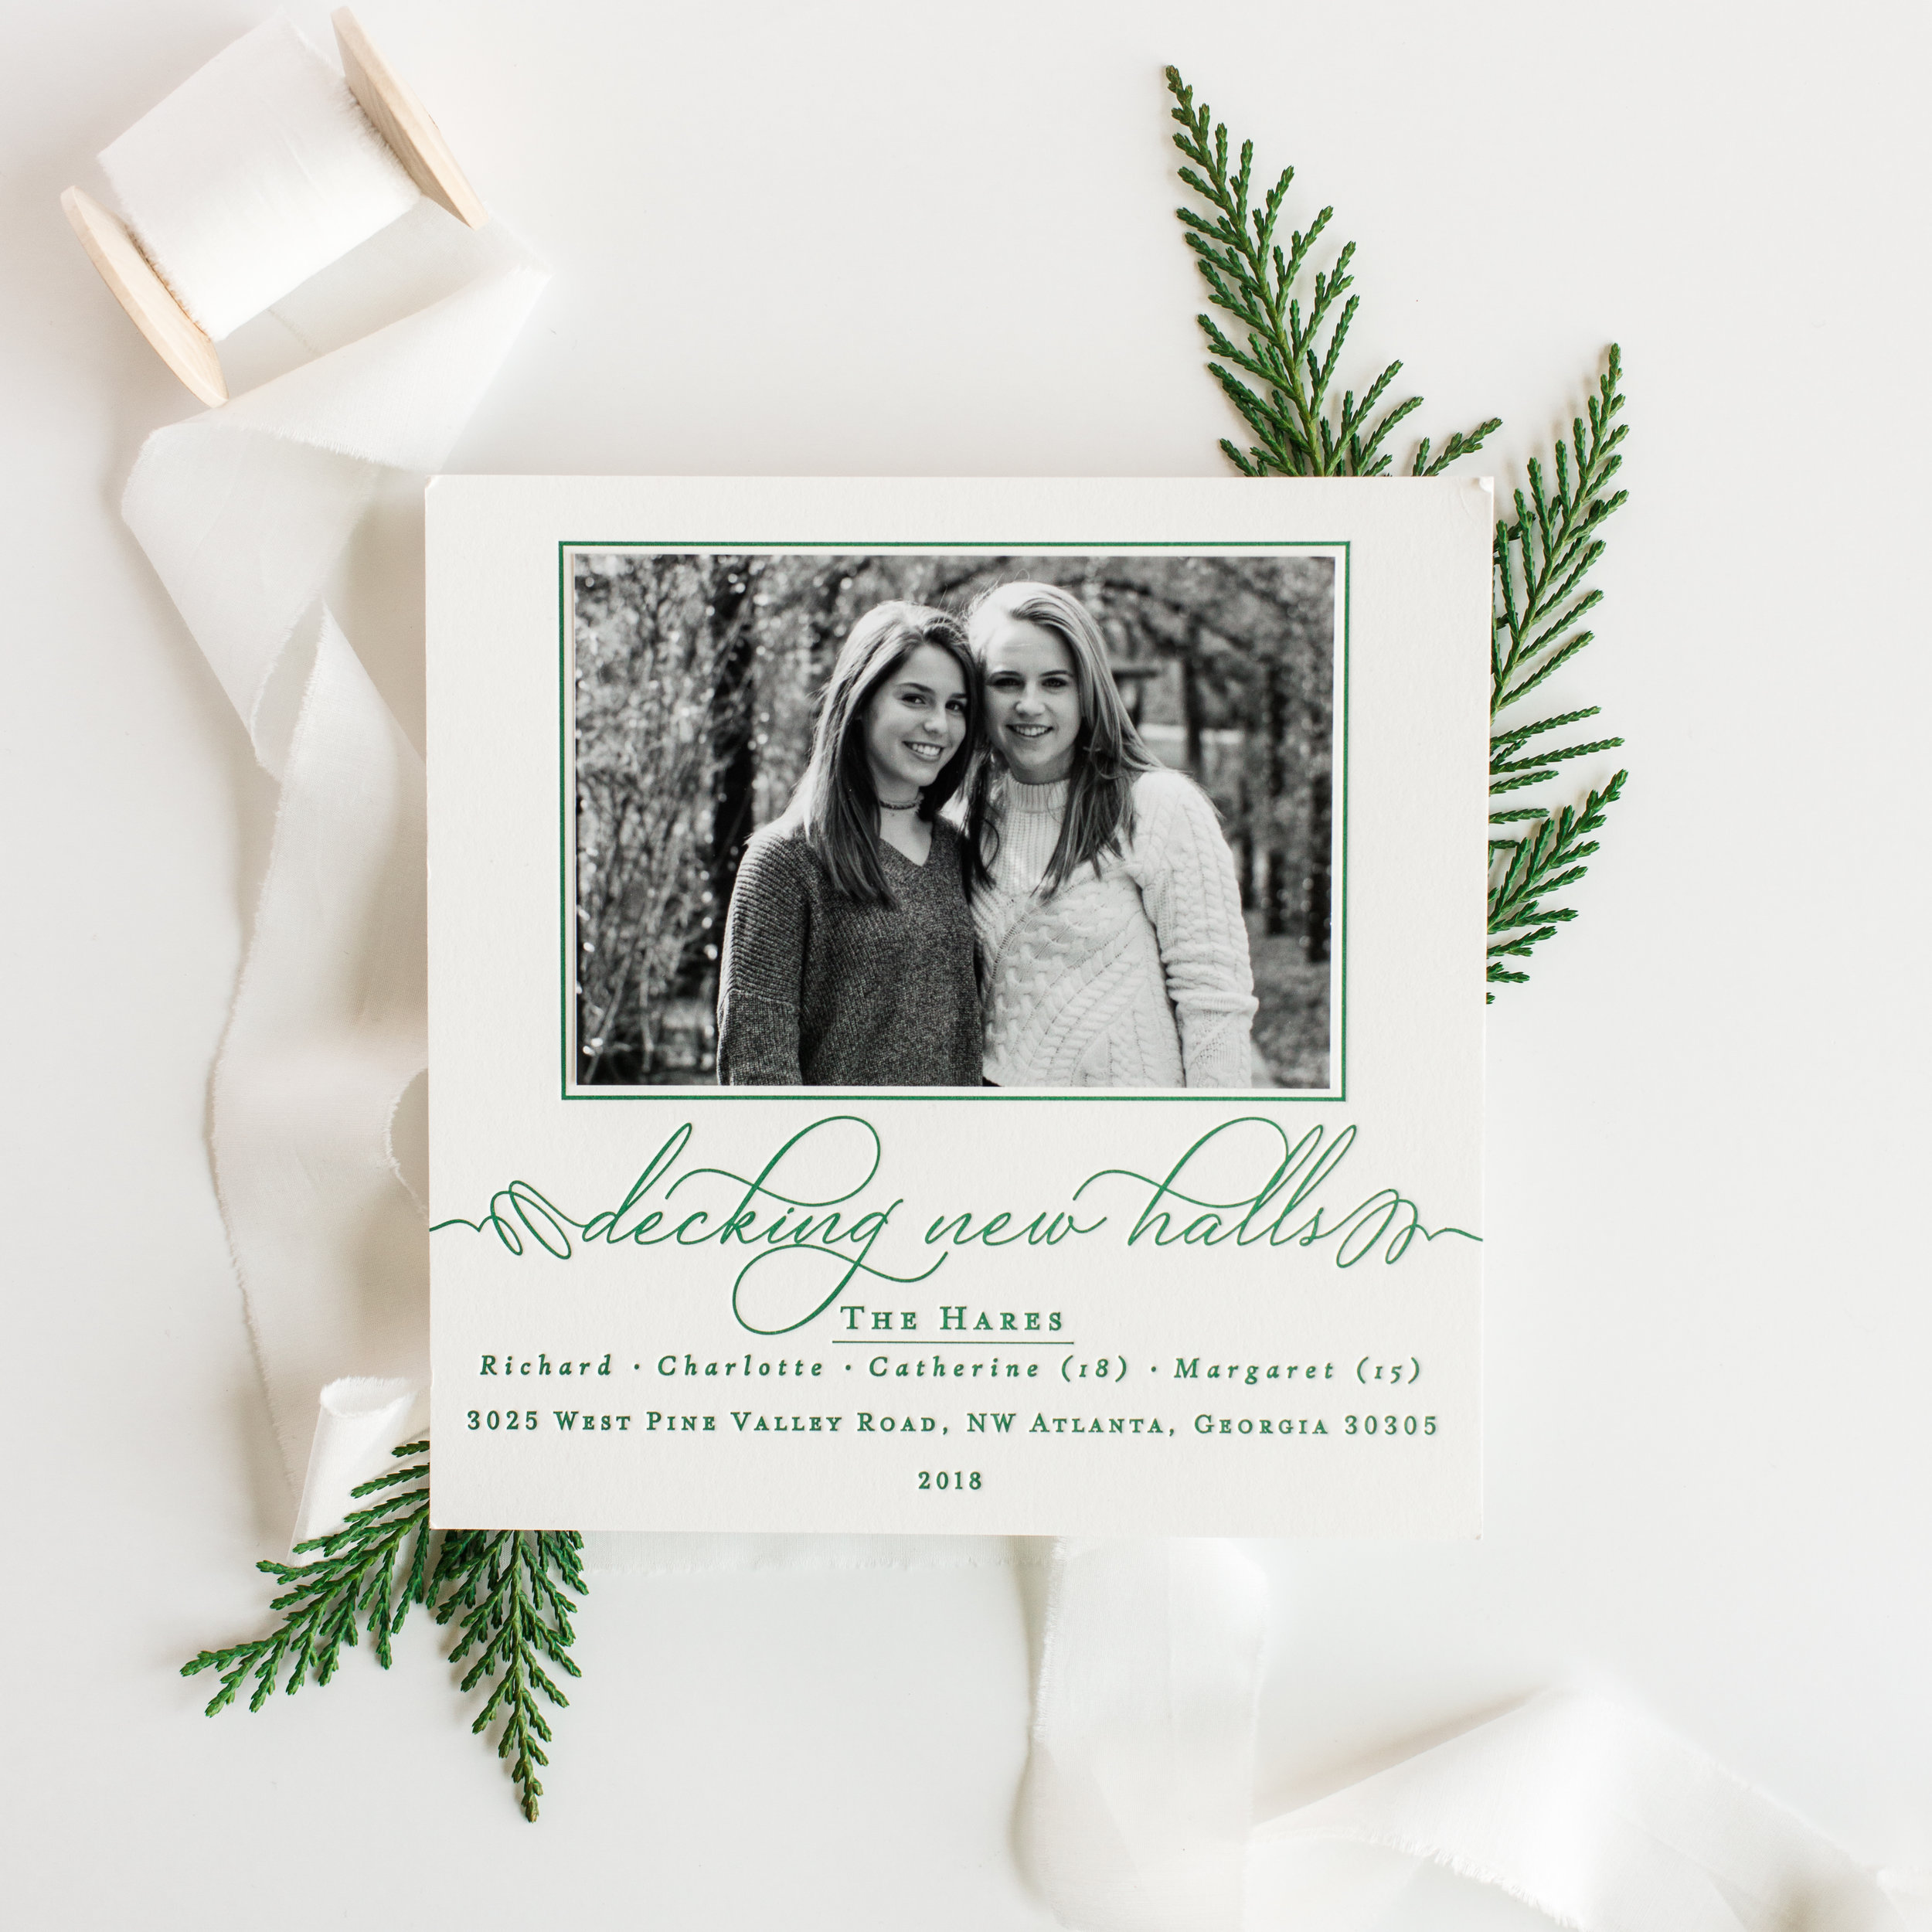 custom-invitation-stationary-designer-grammarcy-fine-papers-winter19-422.jpg